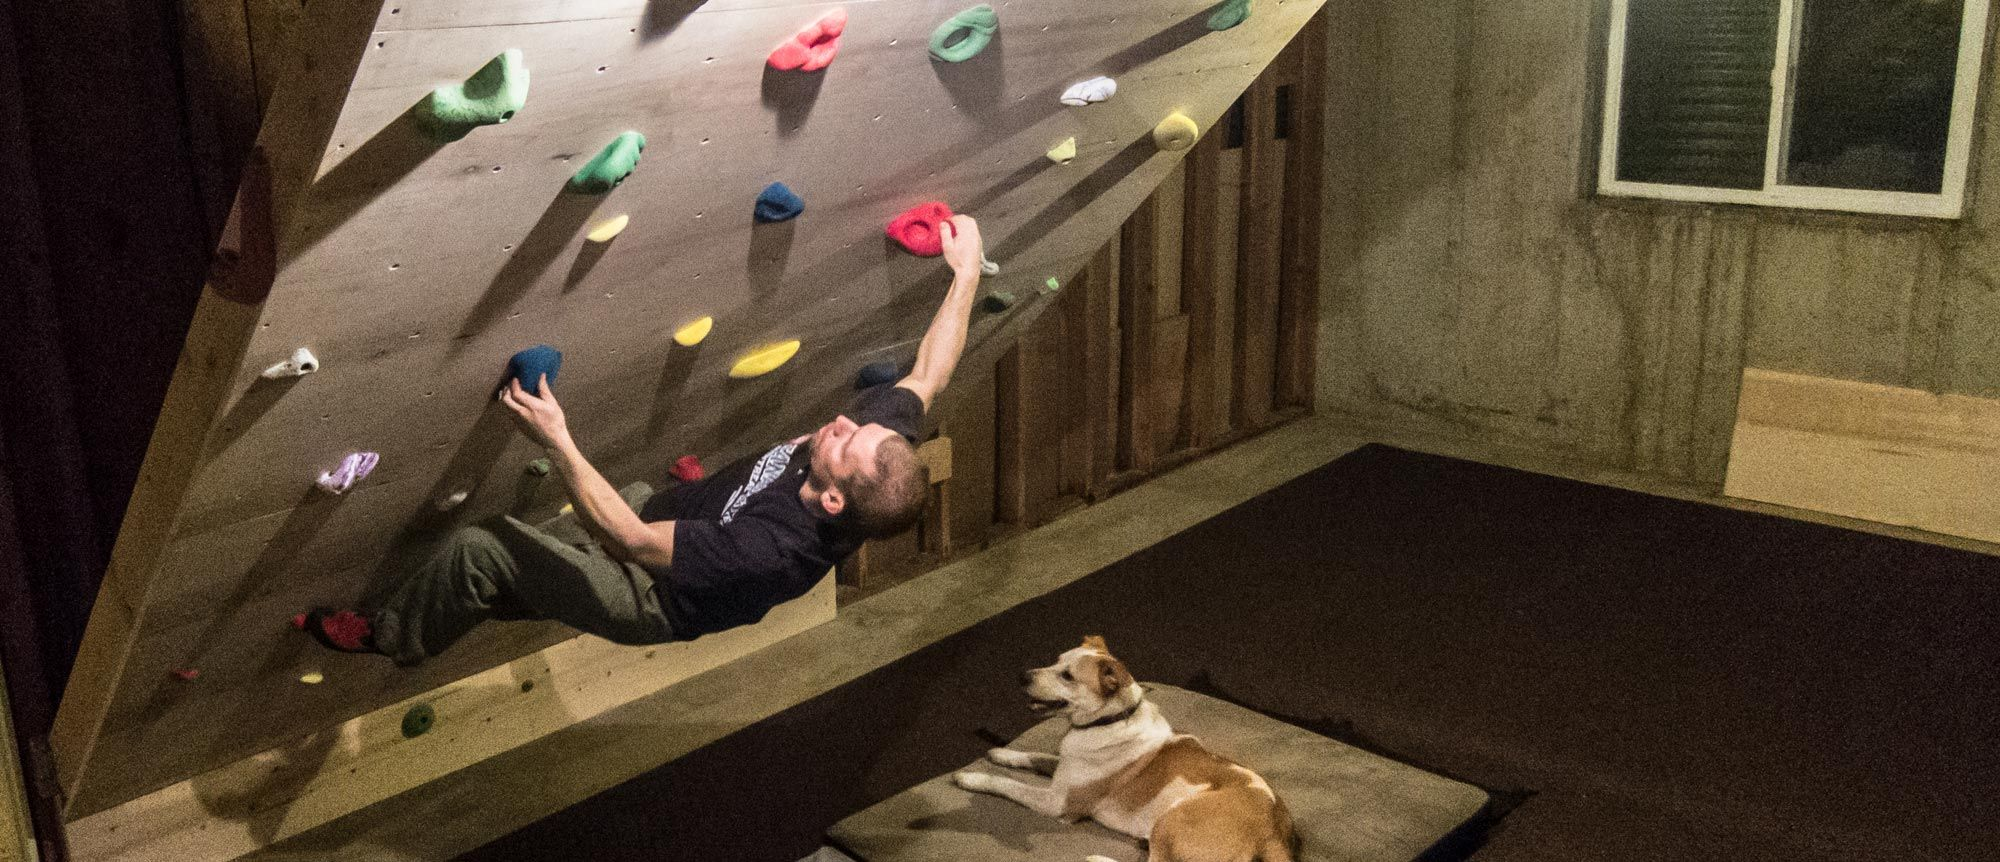 Home Rock Climbing Wall Design custom designed rock climbing wall contemporary home gym How To Build Your Own Basement Bouldering Wall In 10 Steps